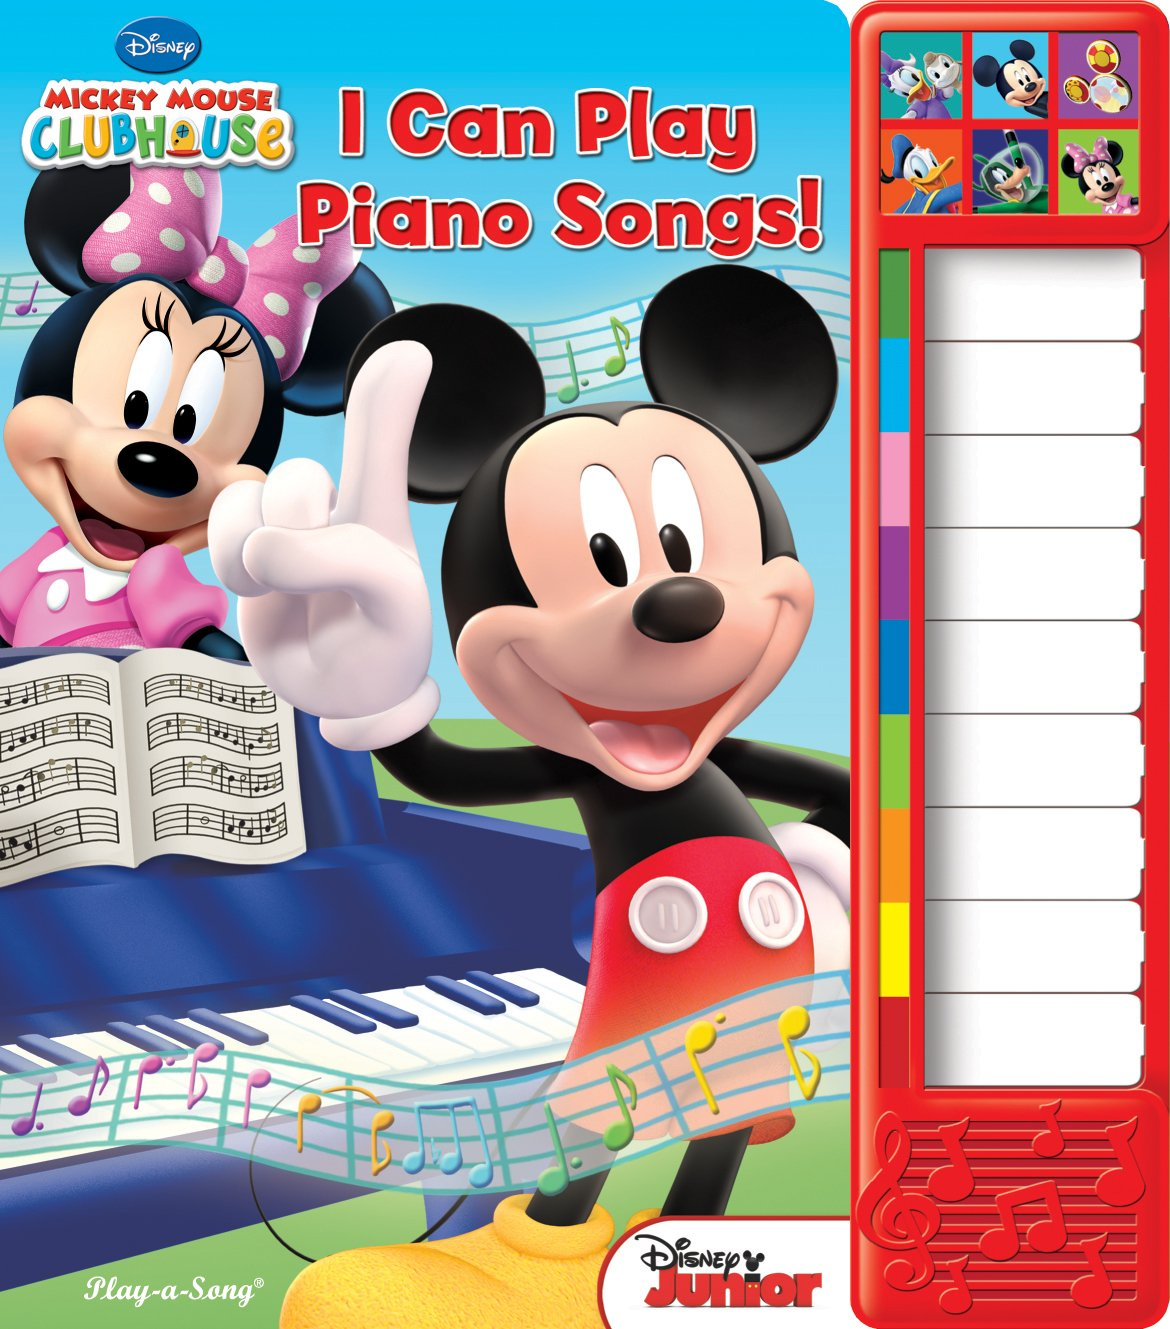 Mickey Mouse Clubhouse: I Can Play Piano Songs!: Piano Sound Book (Mickey Mouse Clubhouse: Play-a-Song)